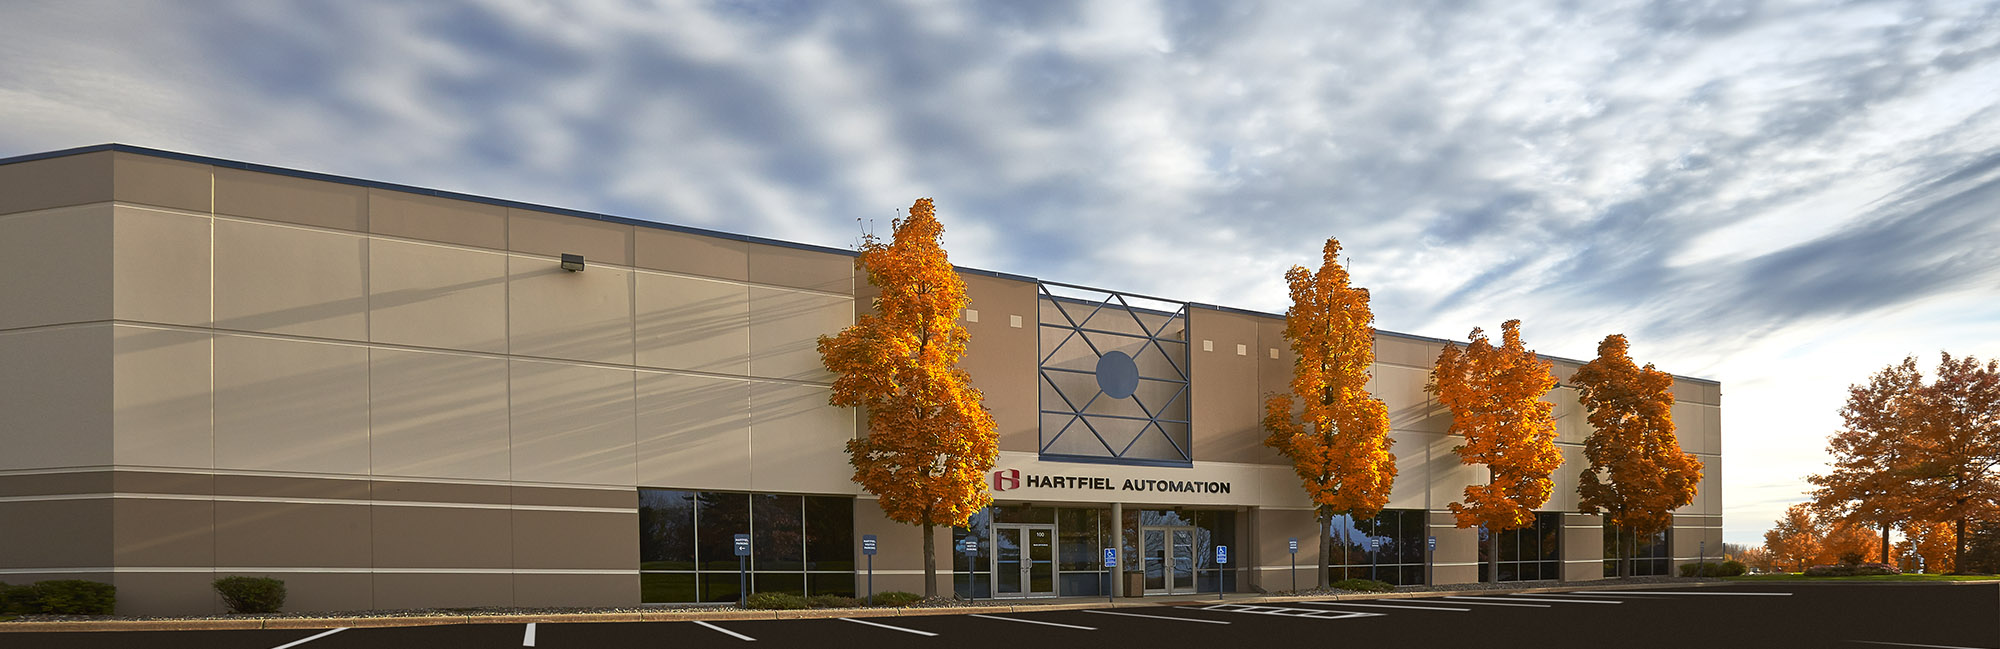 Hartfiel Automation building